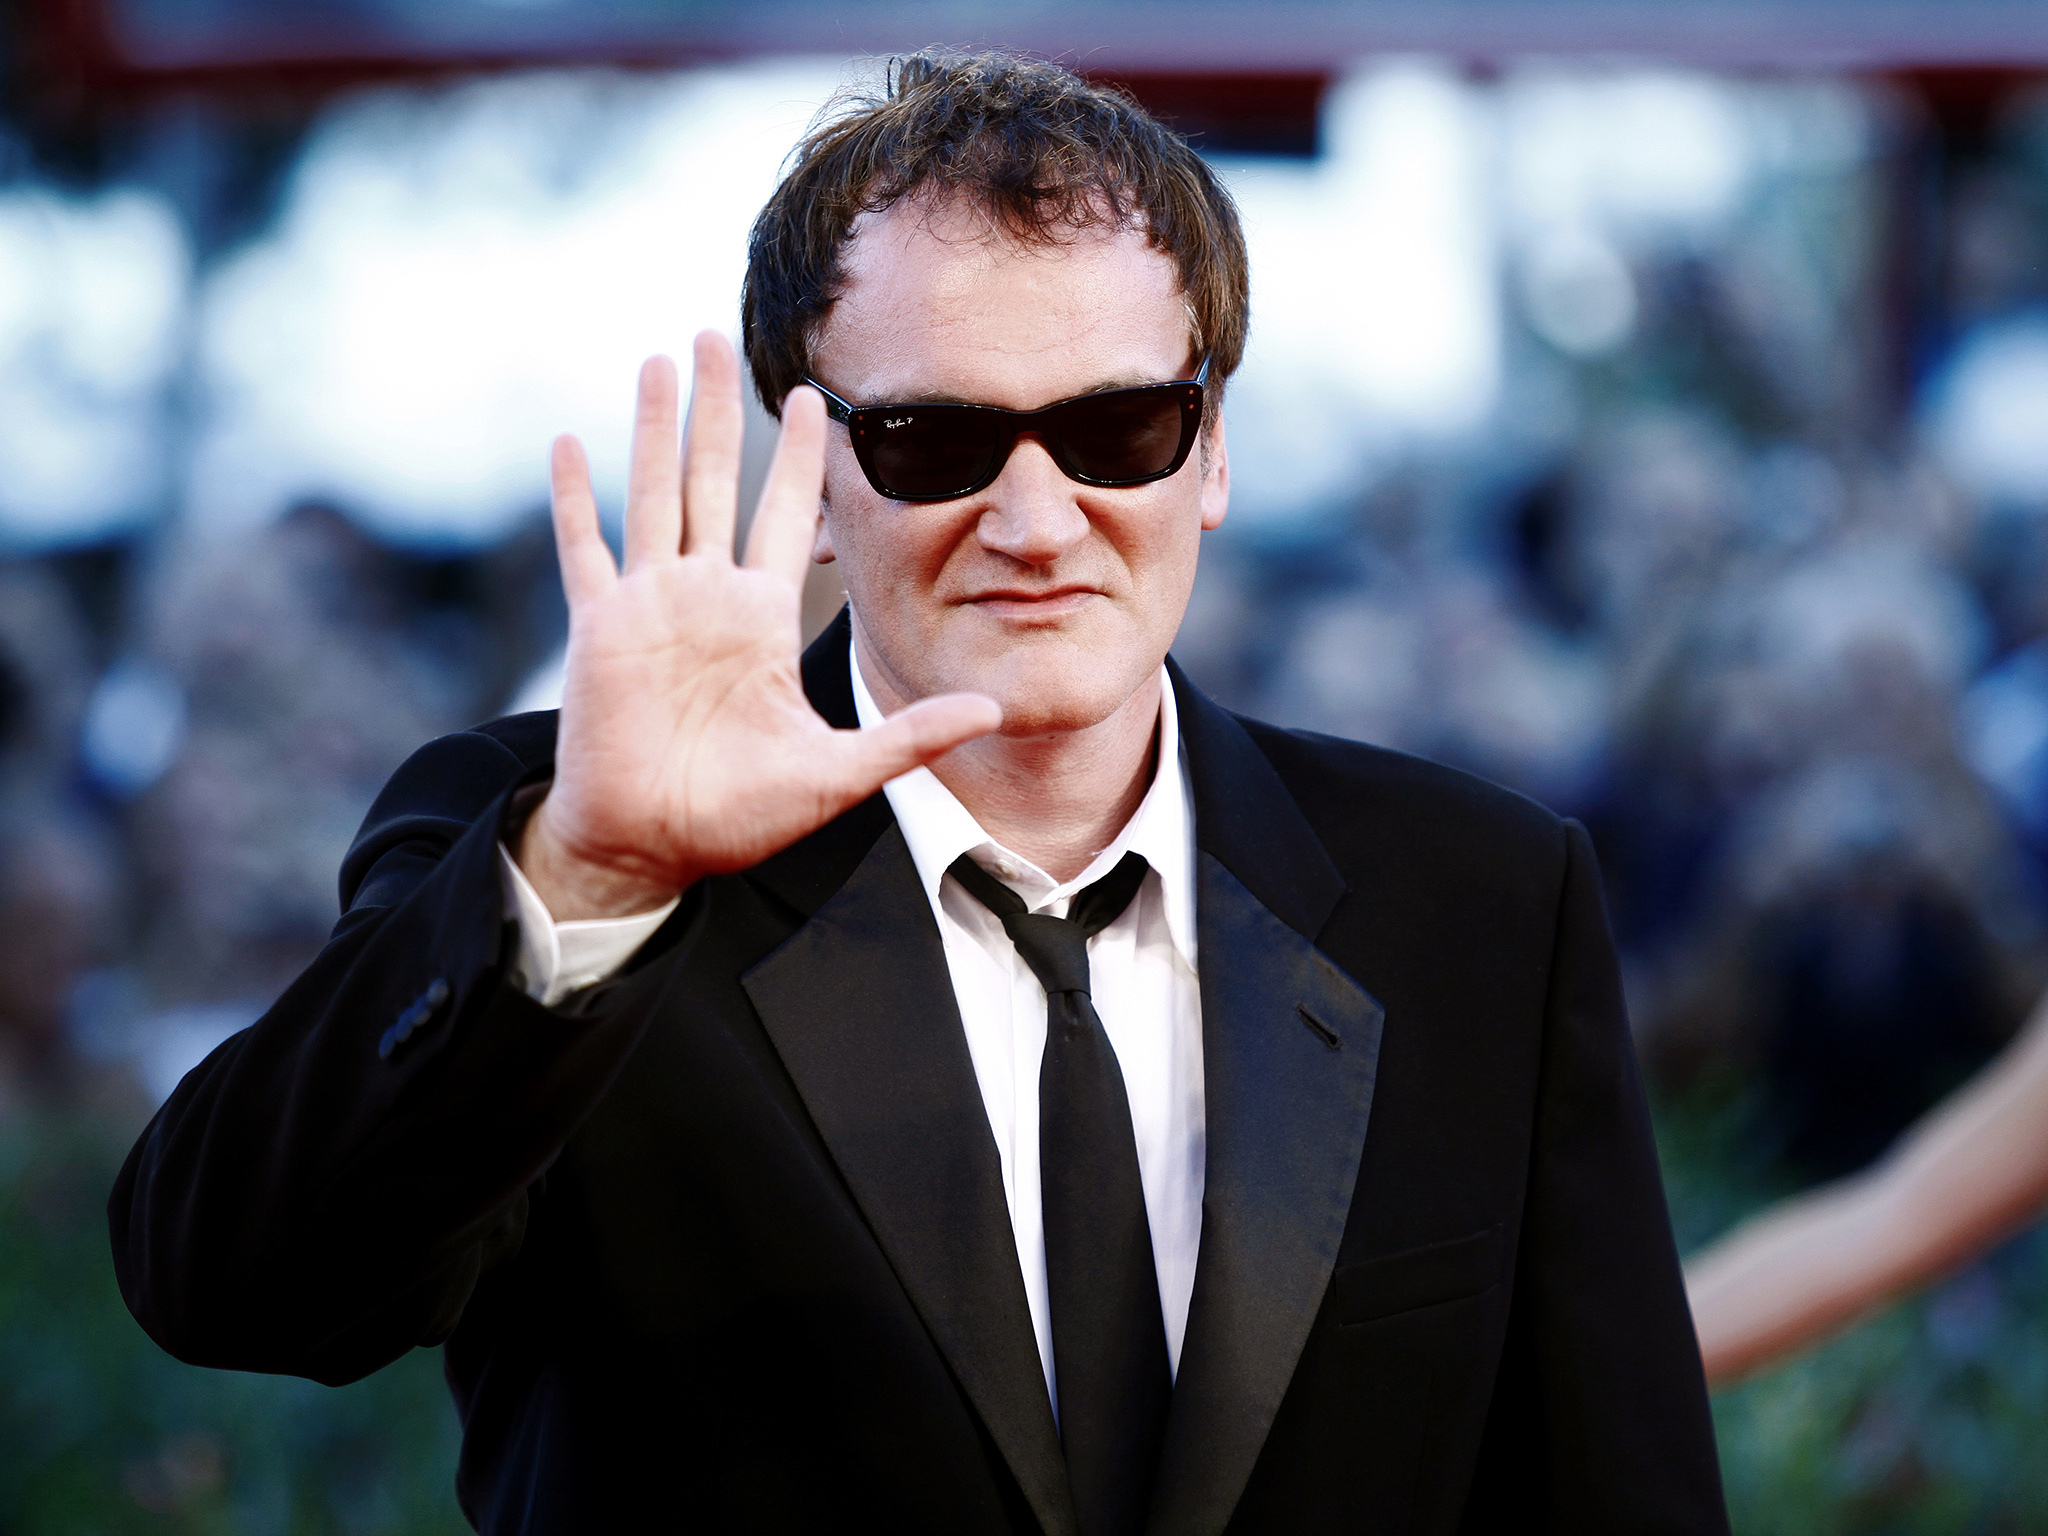 Quentin Tarantino interview: 'I don't want to be the guy doing this forever'